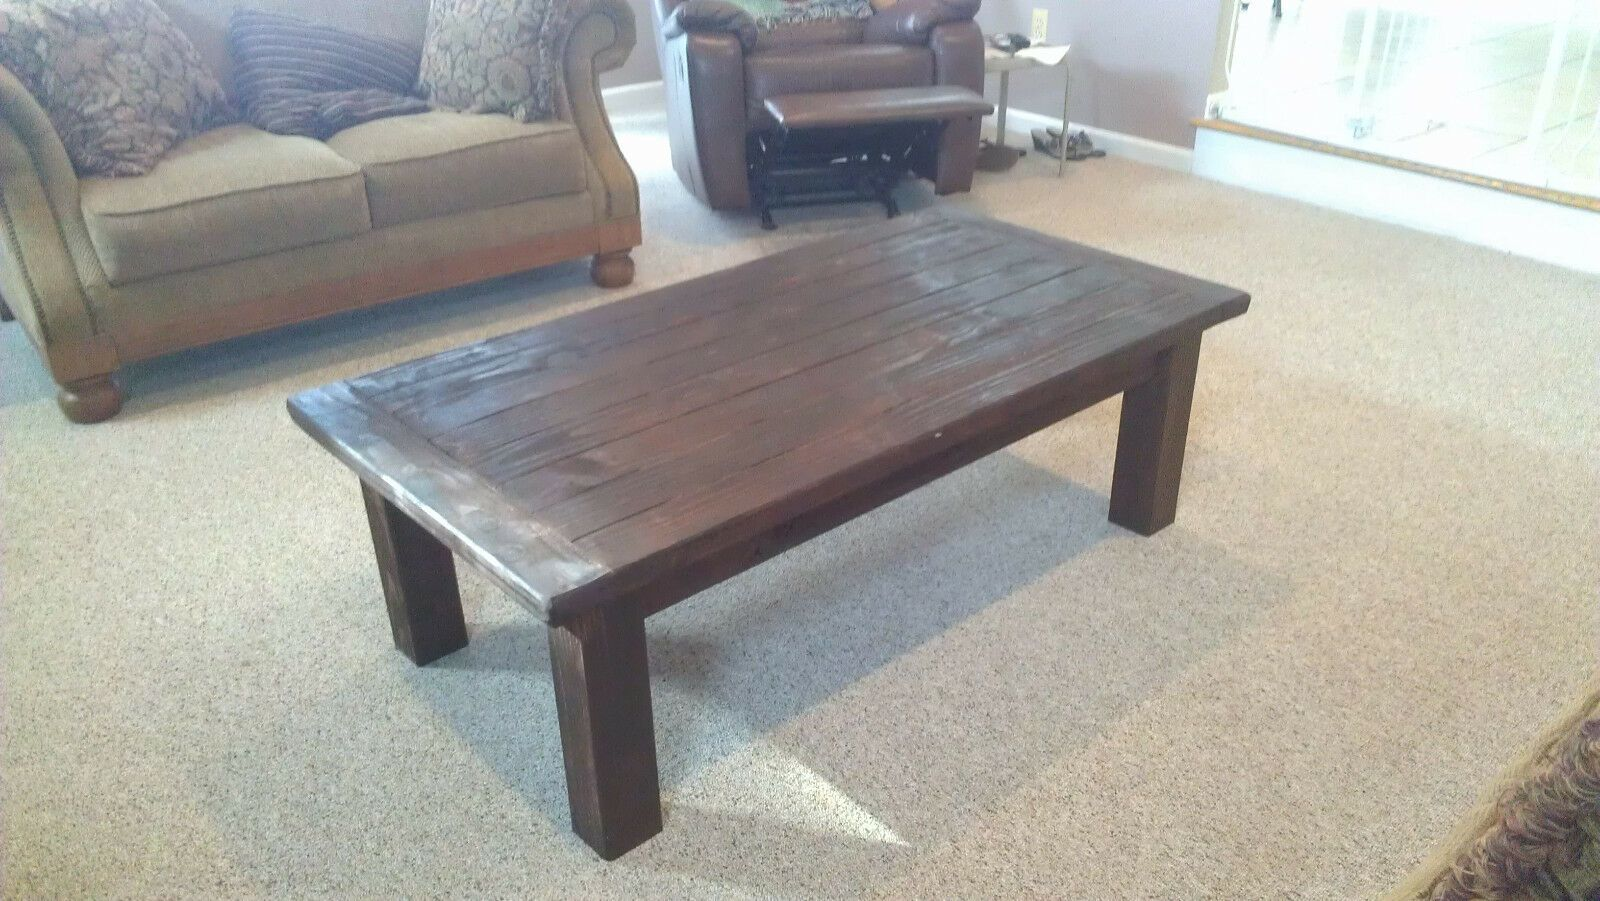 - Red Mahogany Farm Style Coffee Table - Rustic Table - Ideas Of Rustic Table  #rustictable #table - Red Mahogany … Rustic Table, Coffee Table, Coffee  Table Prices